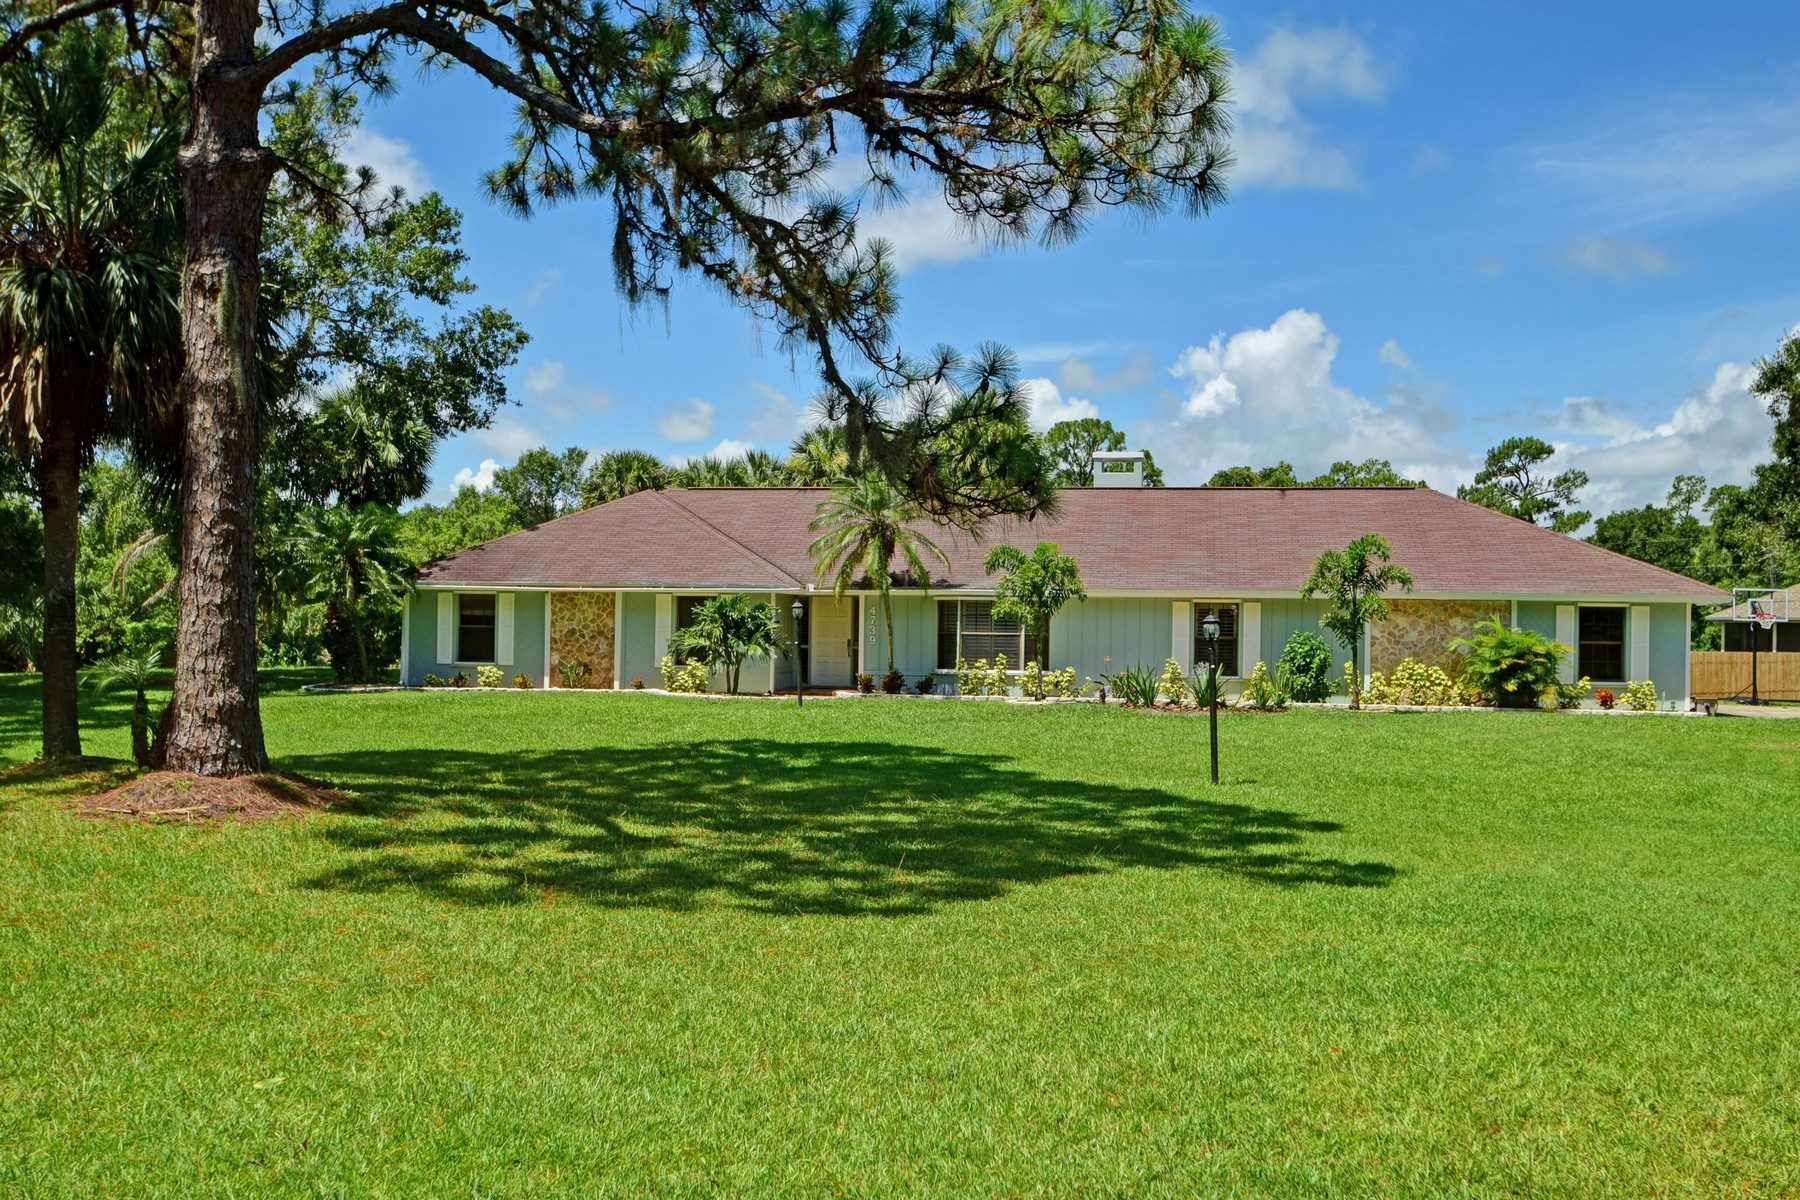 Single Family Home for Sale at The Lindsey Pines Estate 4739 61st Circle Vero Beach, Florida, 32967 United States